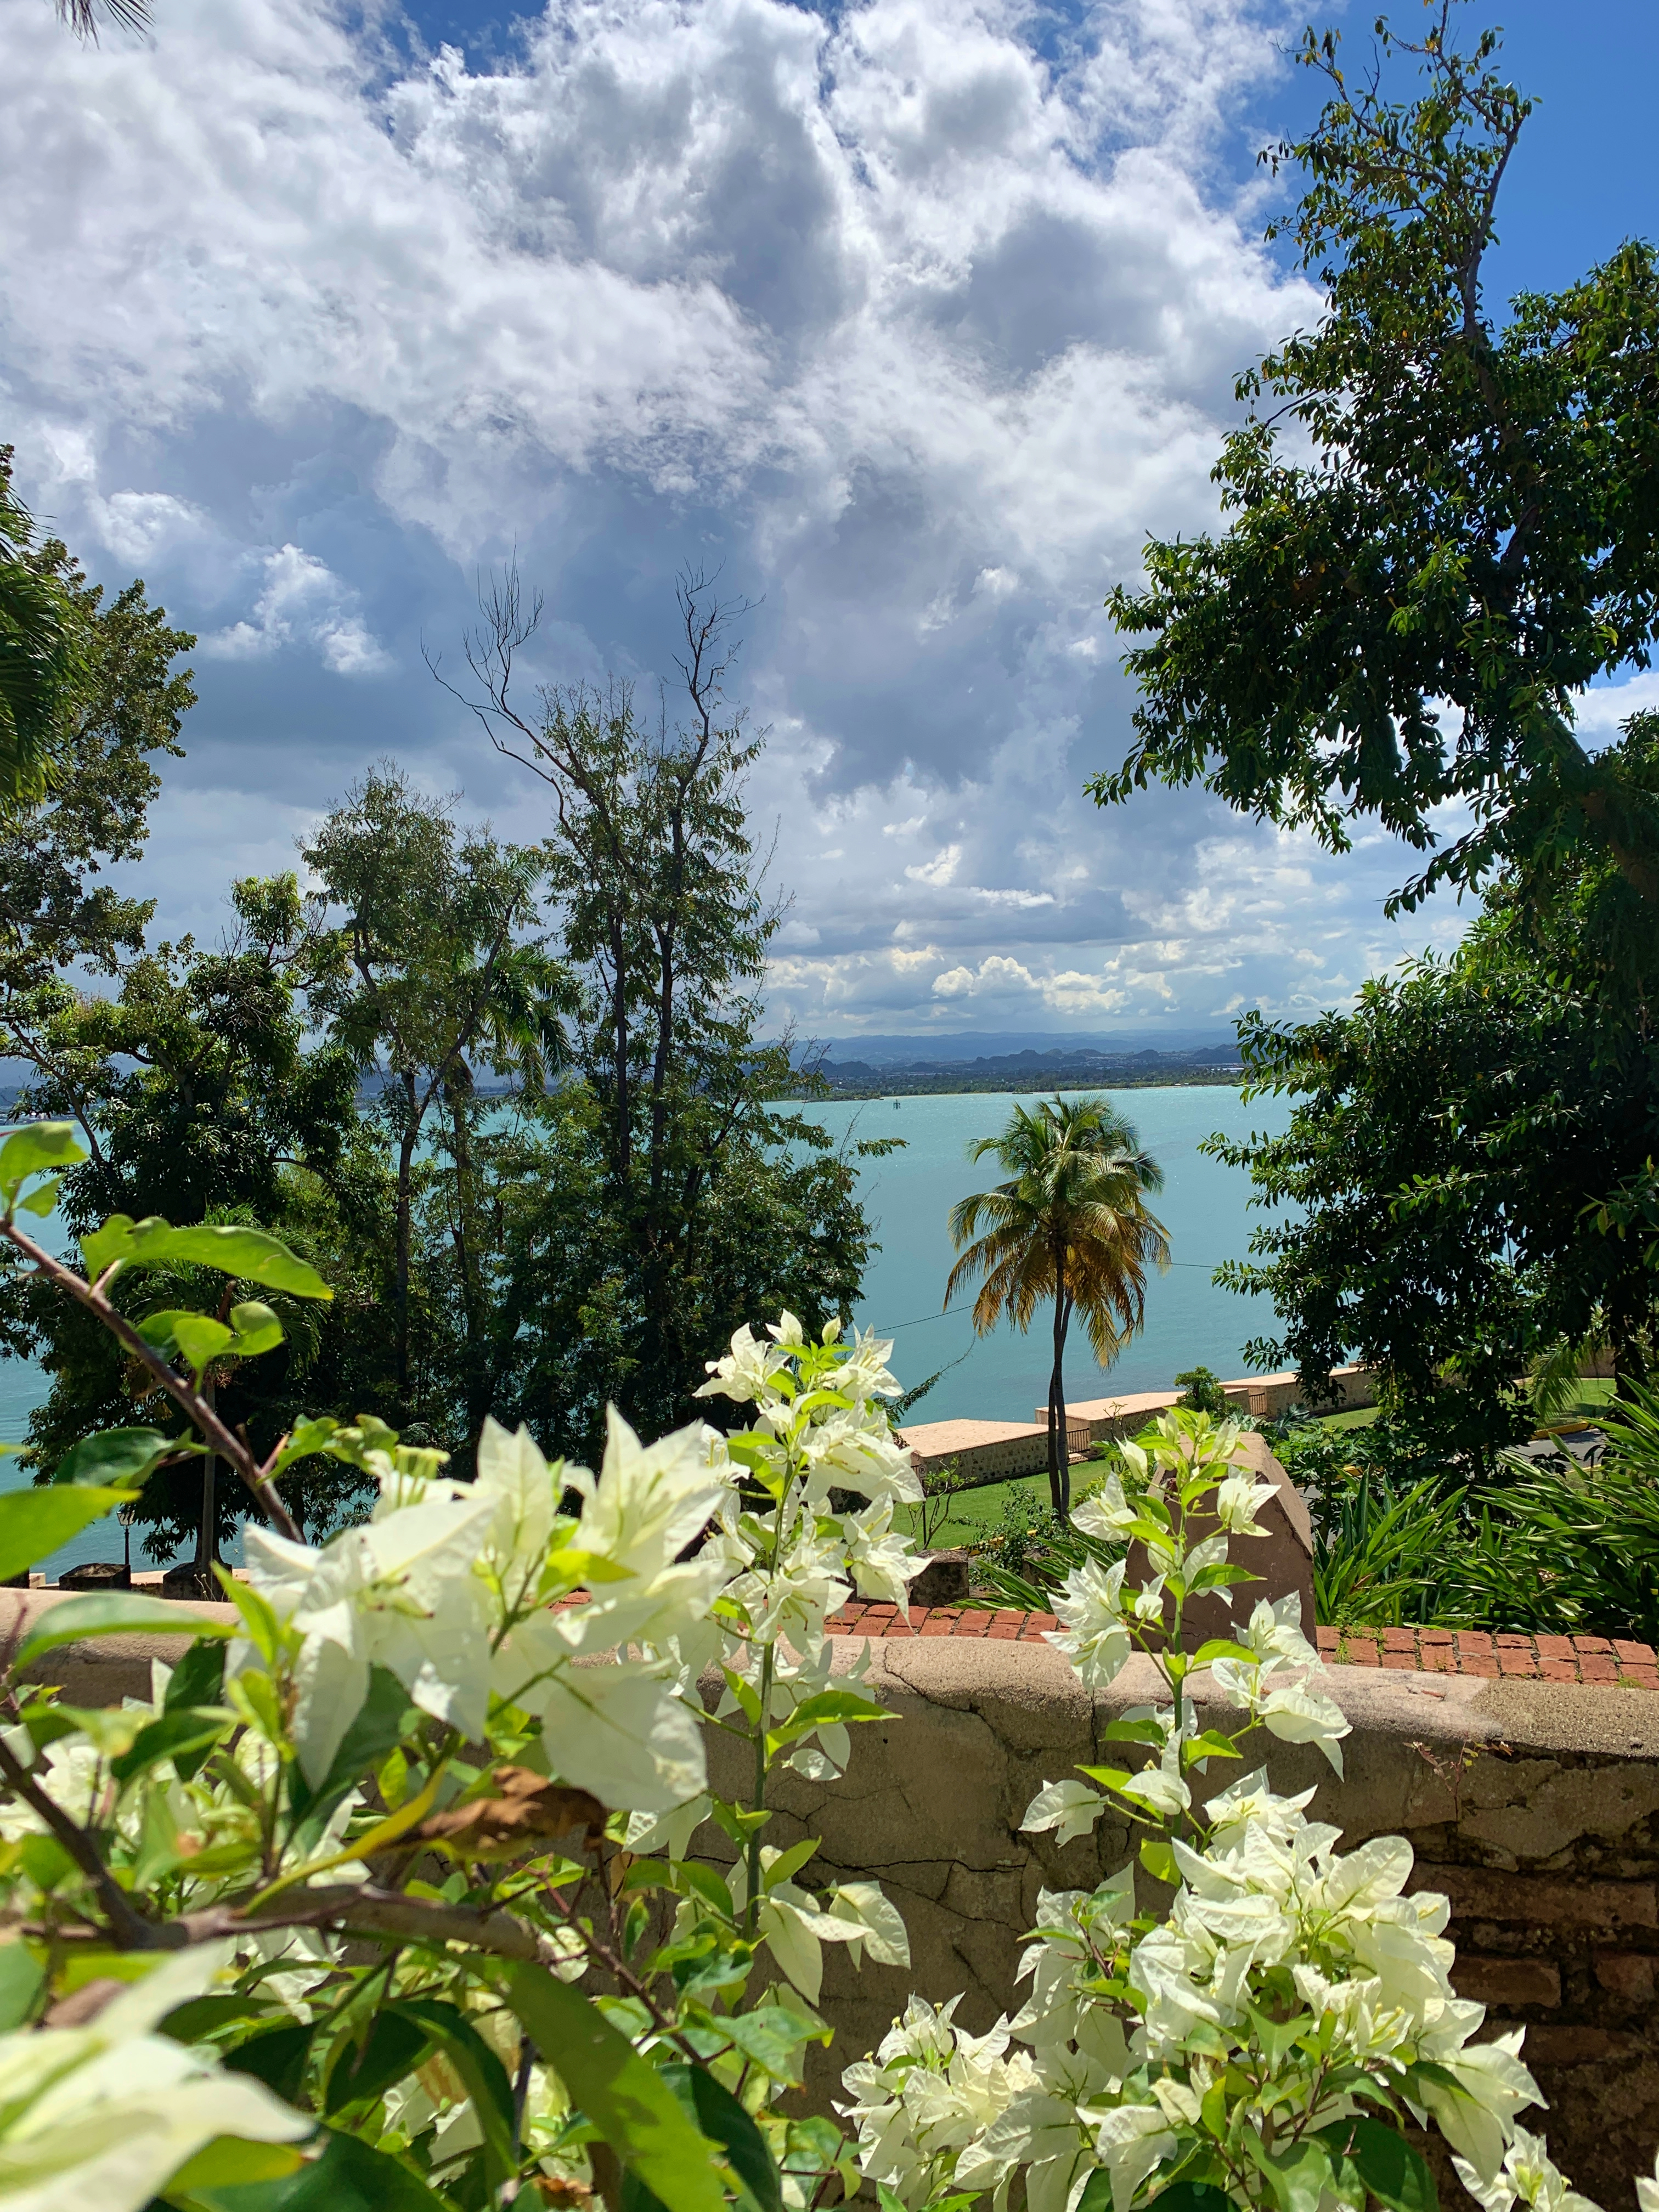 a place to call home by amy schisler reviews discussion a place to call home book On a recent trip to the beautiful island group of Puerto Rico, I was amazed  by the beauty, intrigued by the history, and stunned by the infrastructure.